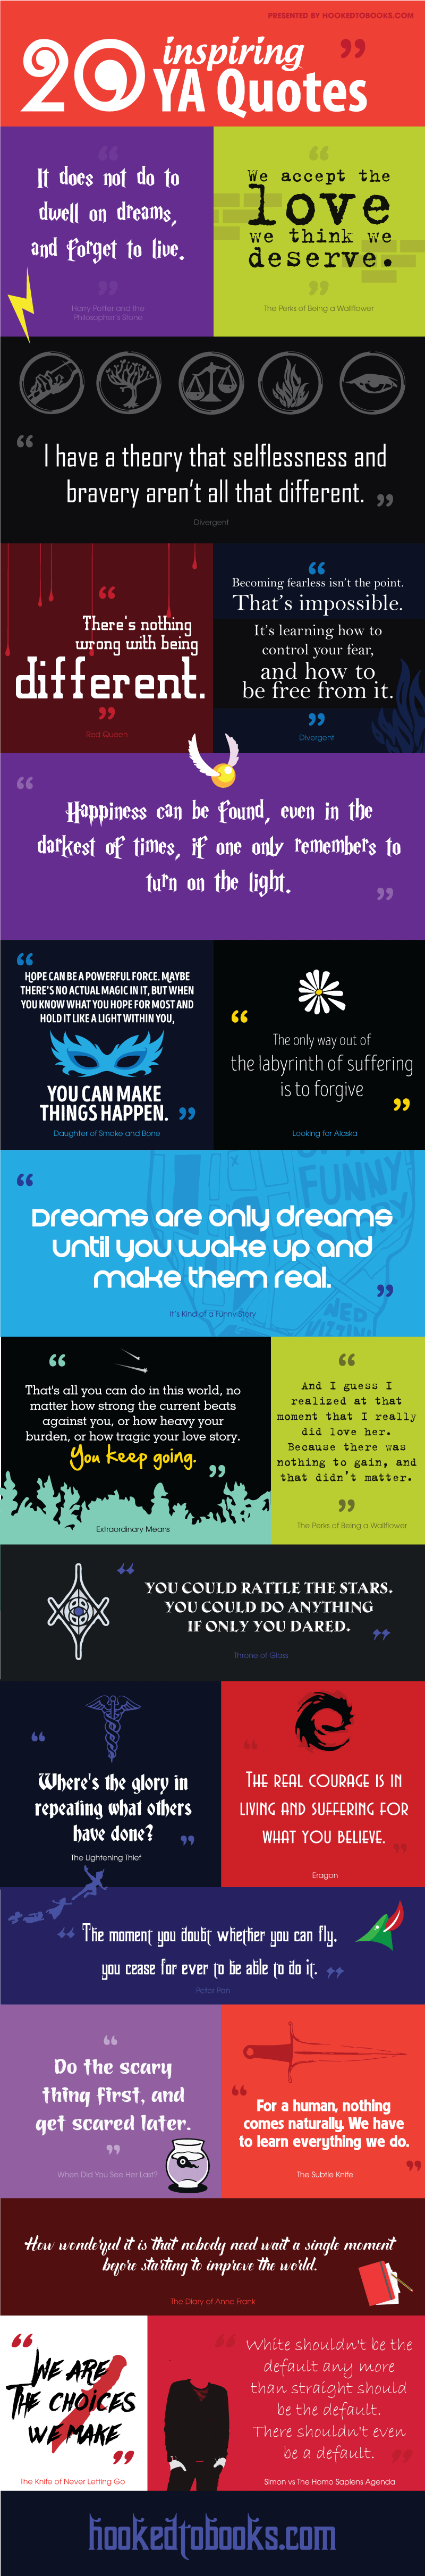 Inspirational Quotes For Young Adults Infographic 20 Inspiring Quotes From Young Adult Books  Hooked